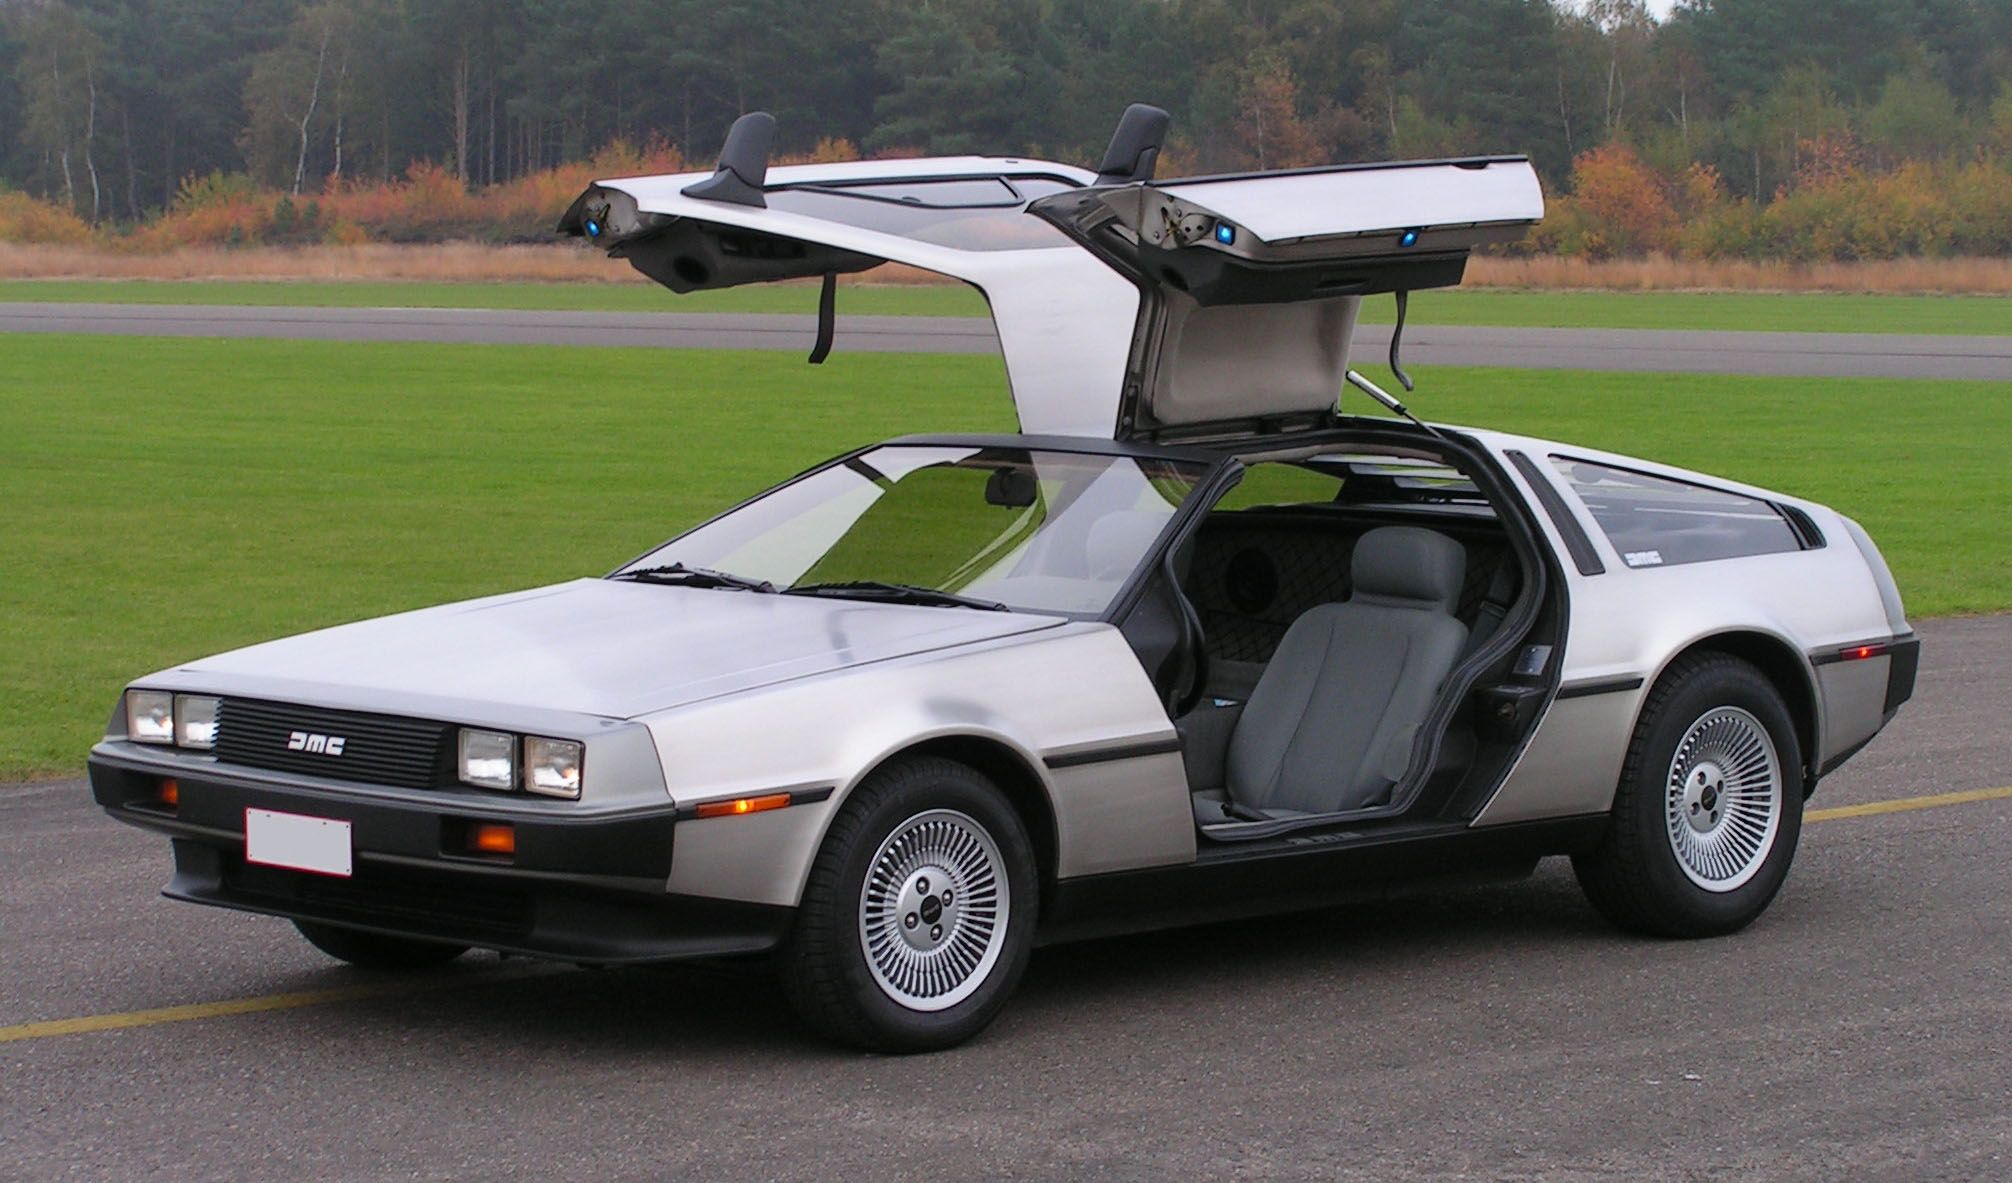 16+ How much is a delorean inspirations